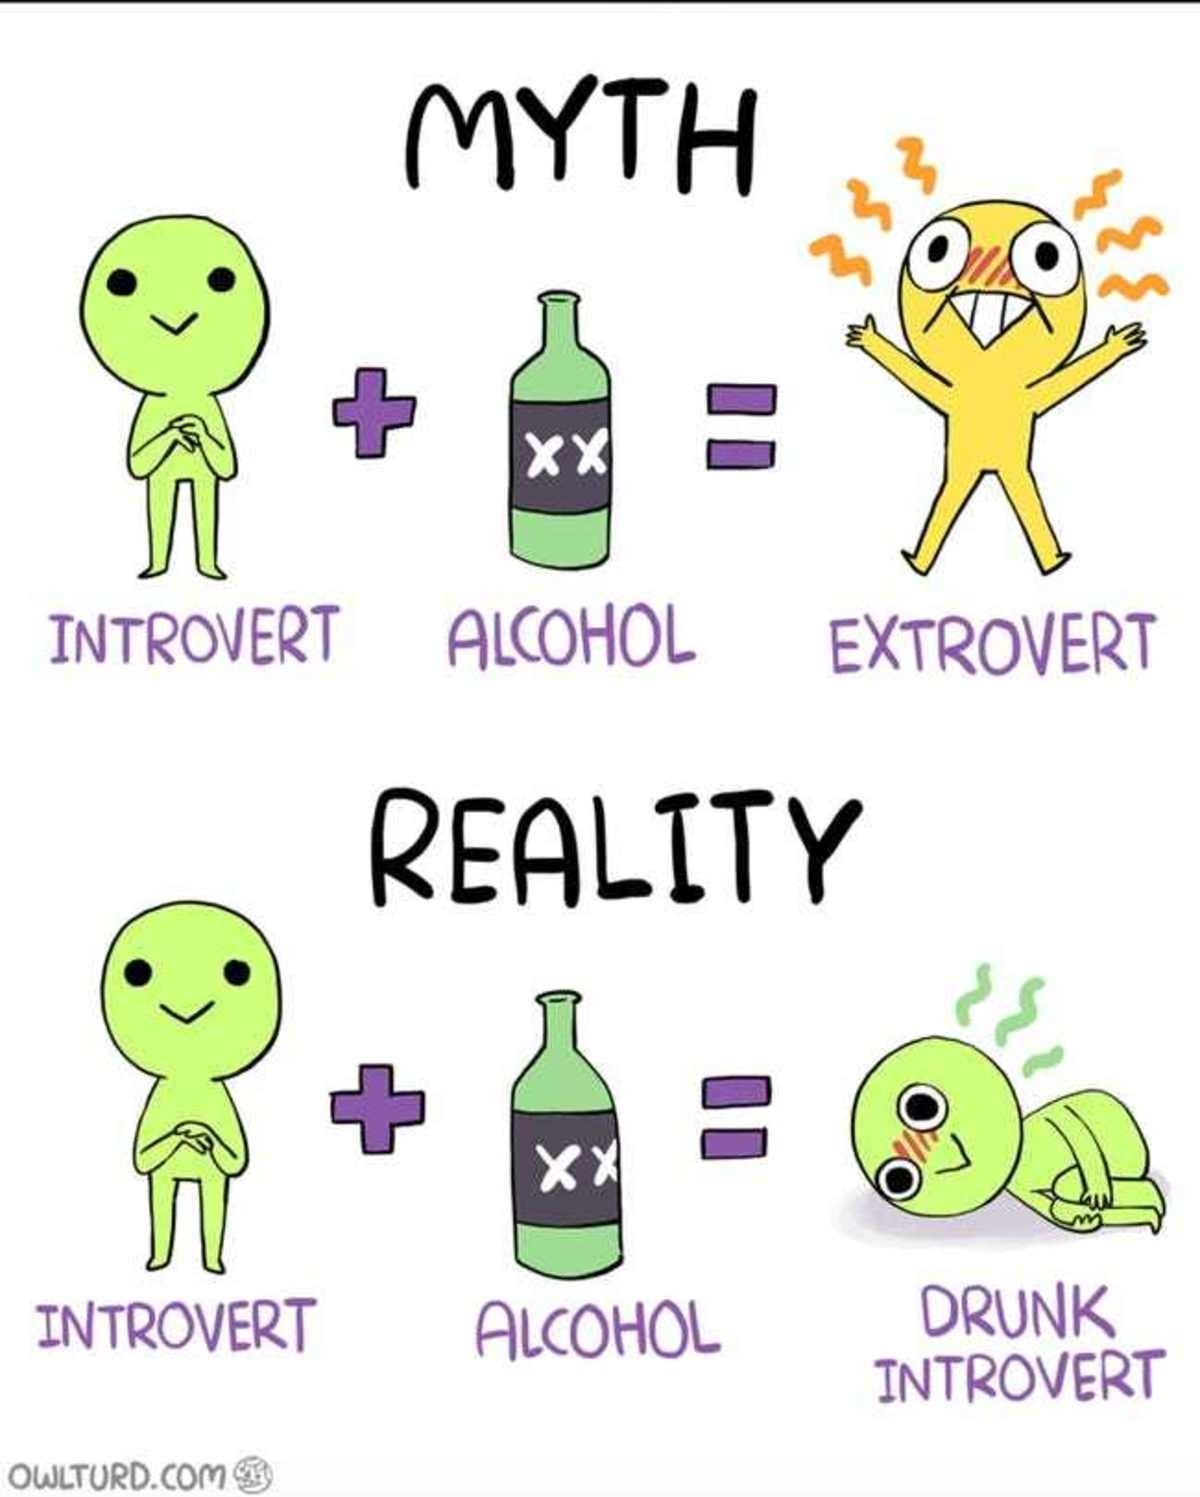 Introvert. .. It's funny cuz it's relatable, which ironically makes it not funny because it hits too close to home.